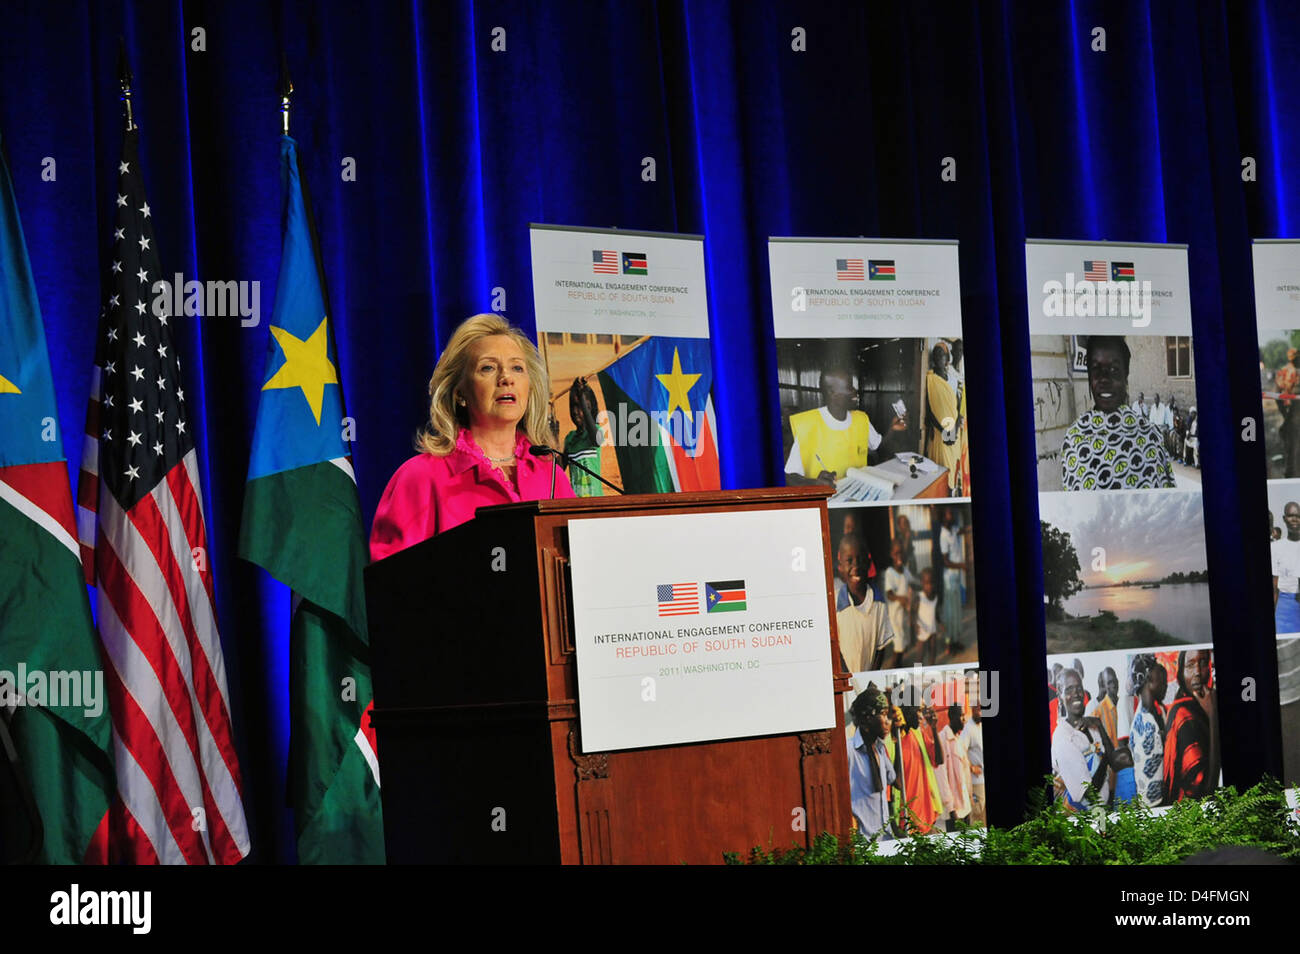 Secretary Clinton Delivers Remarks at International Engagement Conference for South Sudan - Stock Image